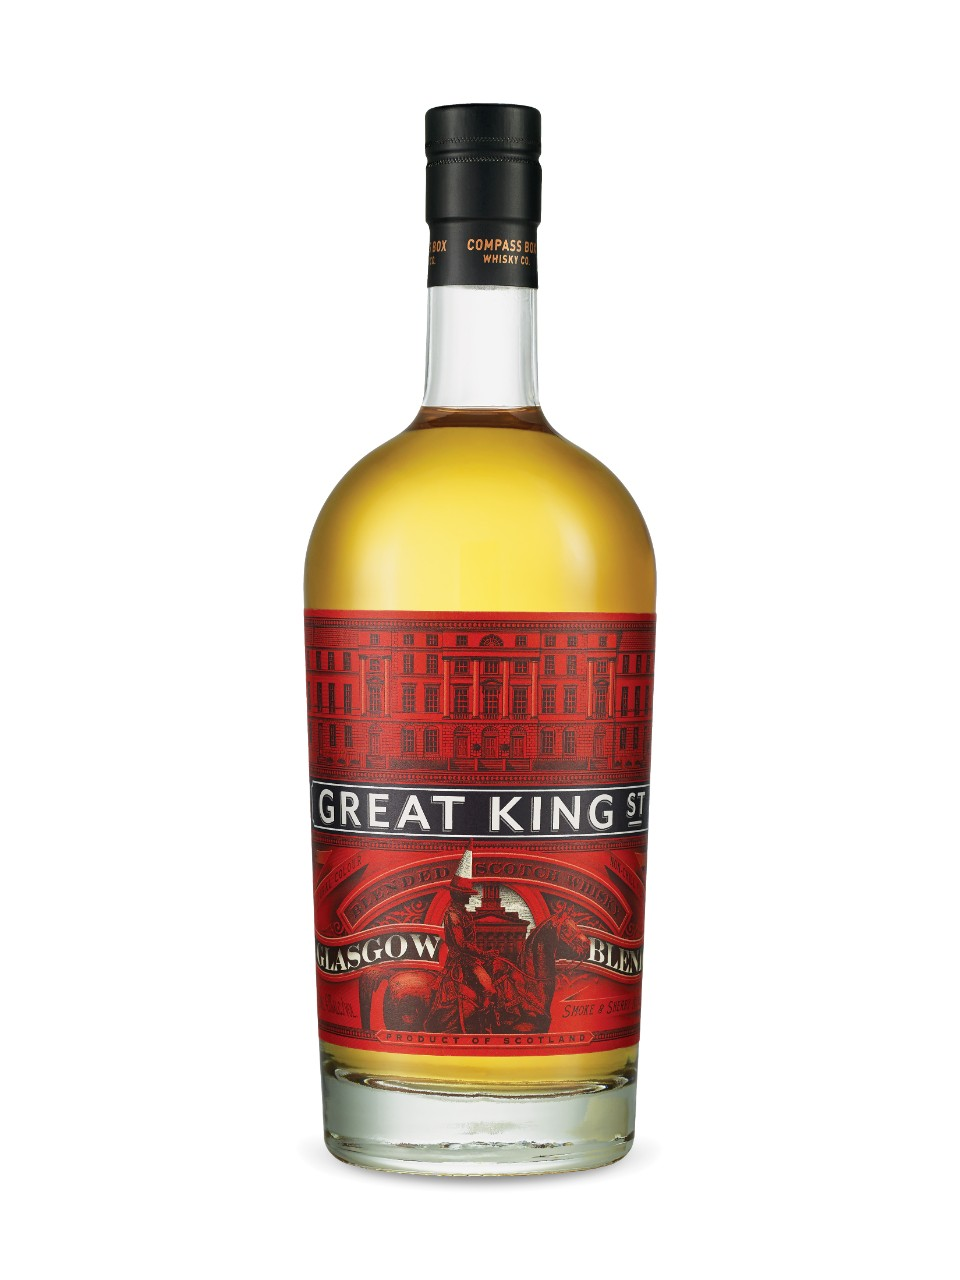 Image for Compass Box Great King Street Glasgow Blend Scotch Whisky from LCBO